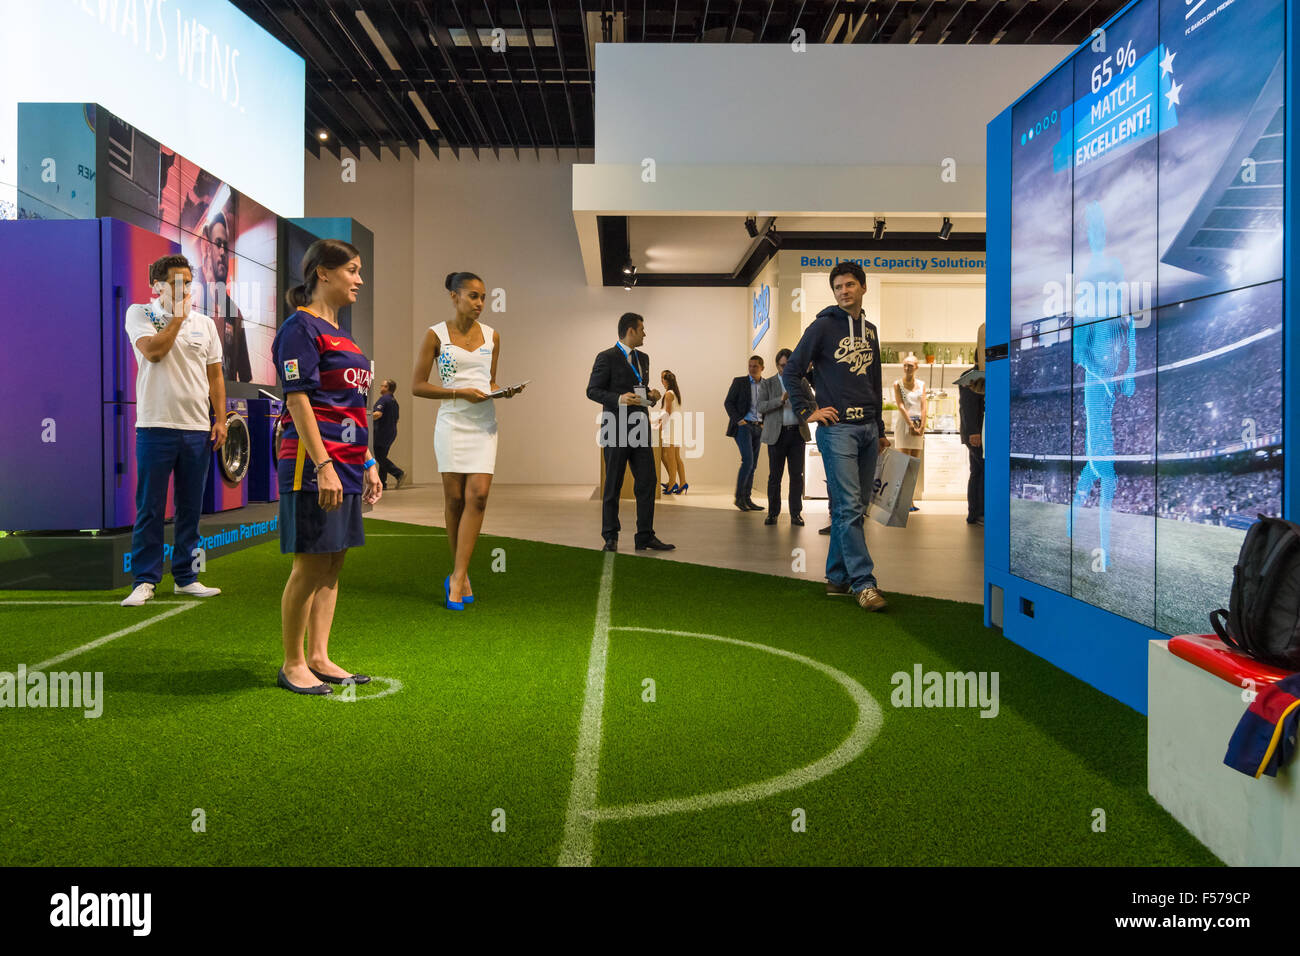 Exhibition Stand Game : Stand of company beko interactive game of football international